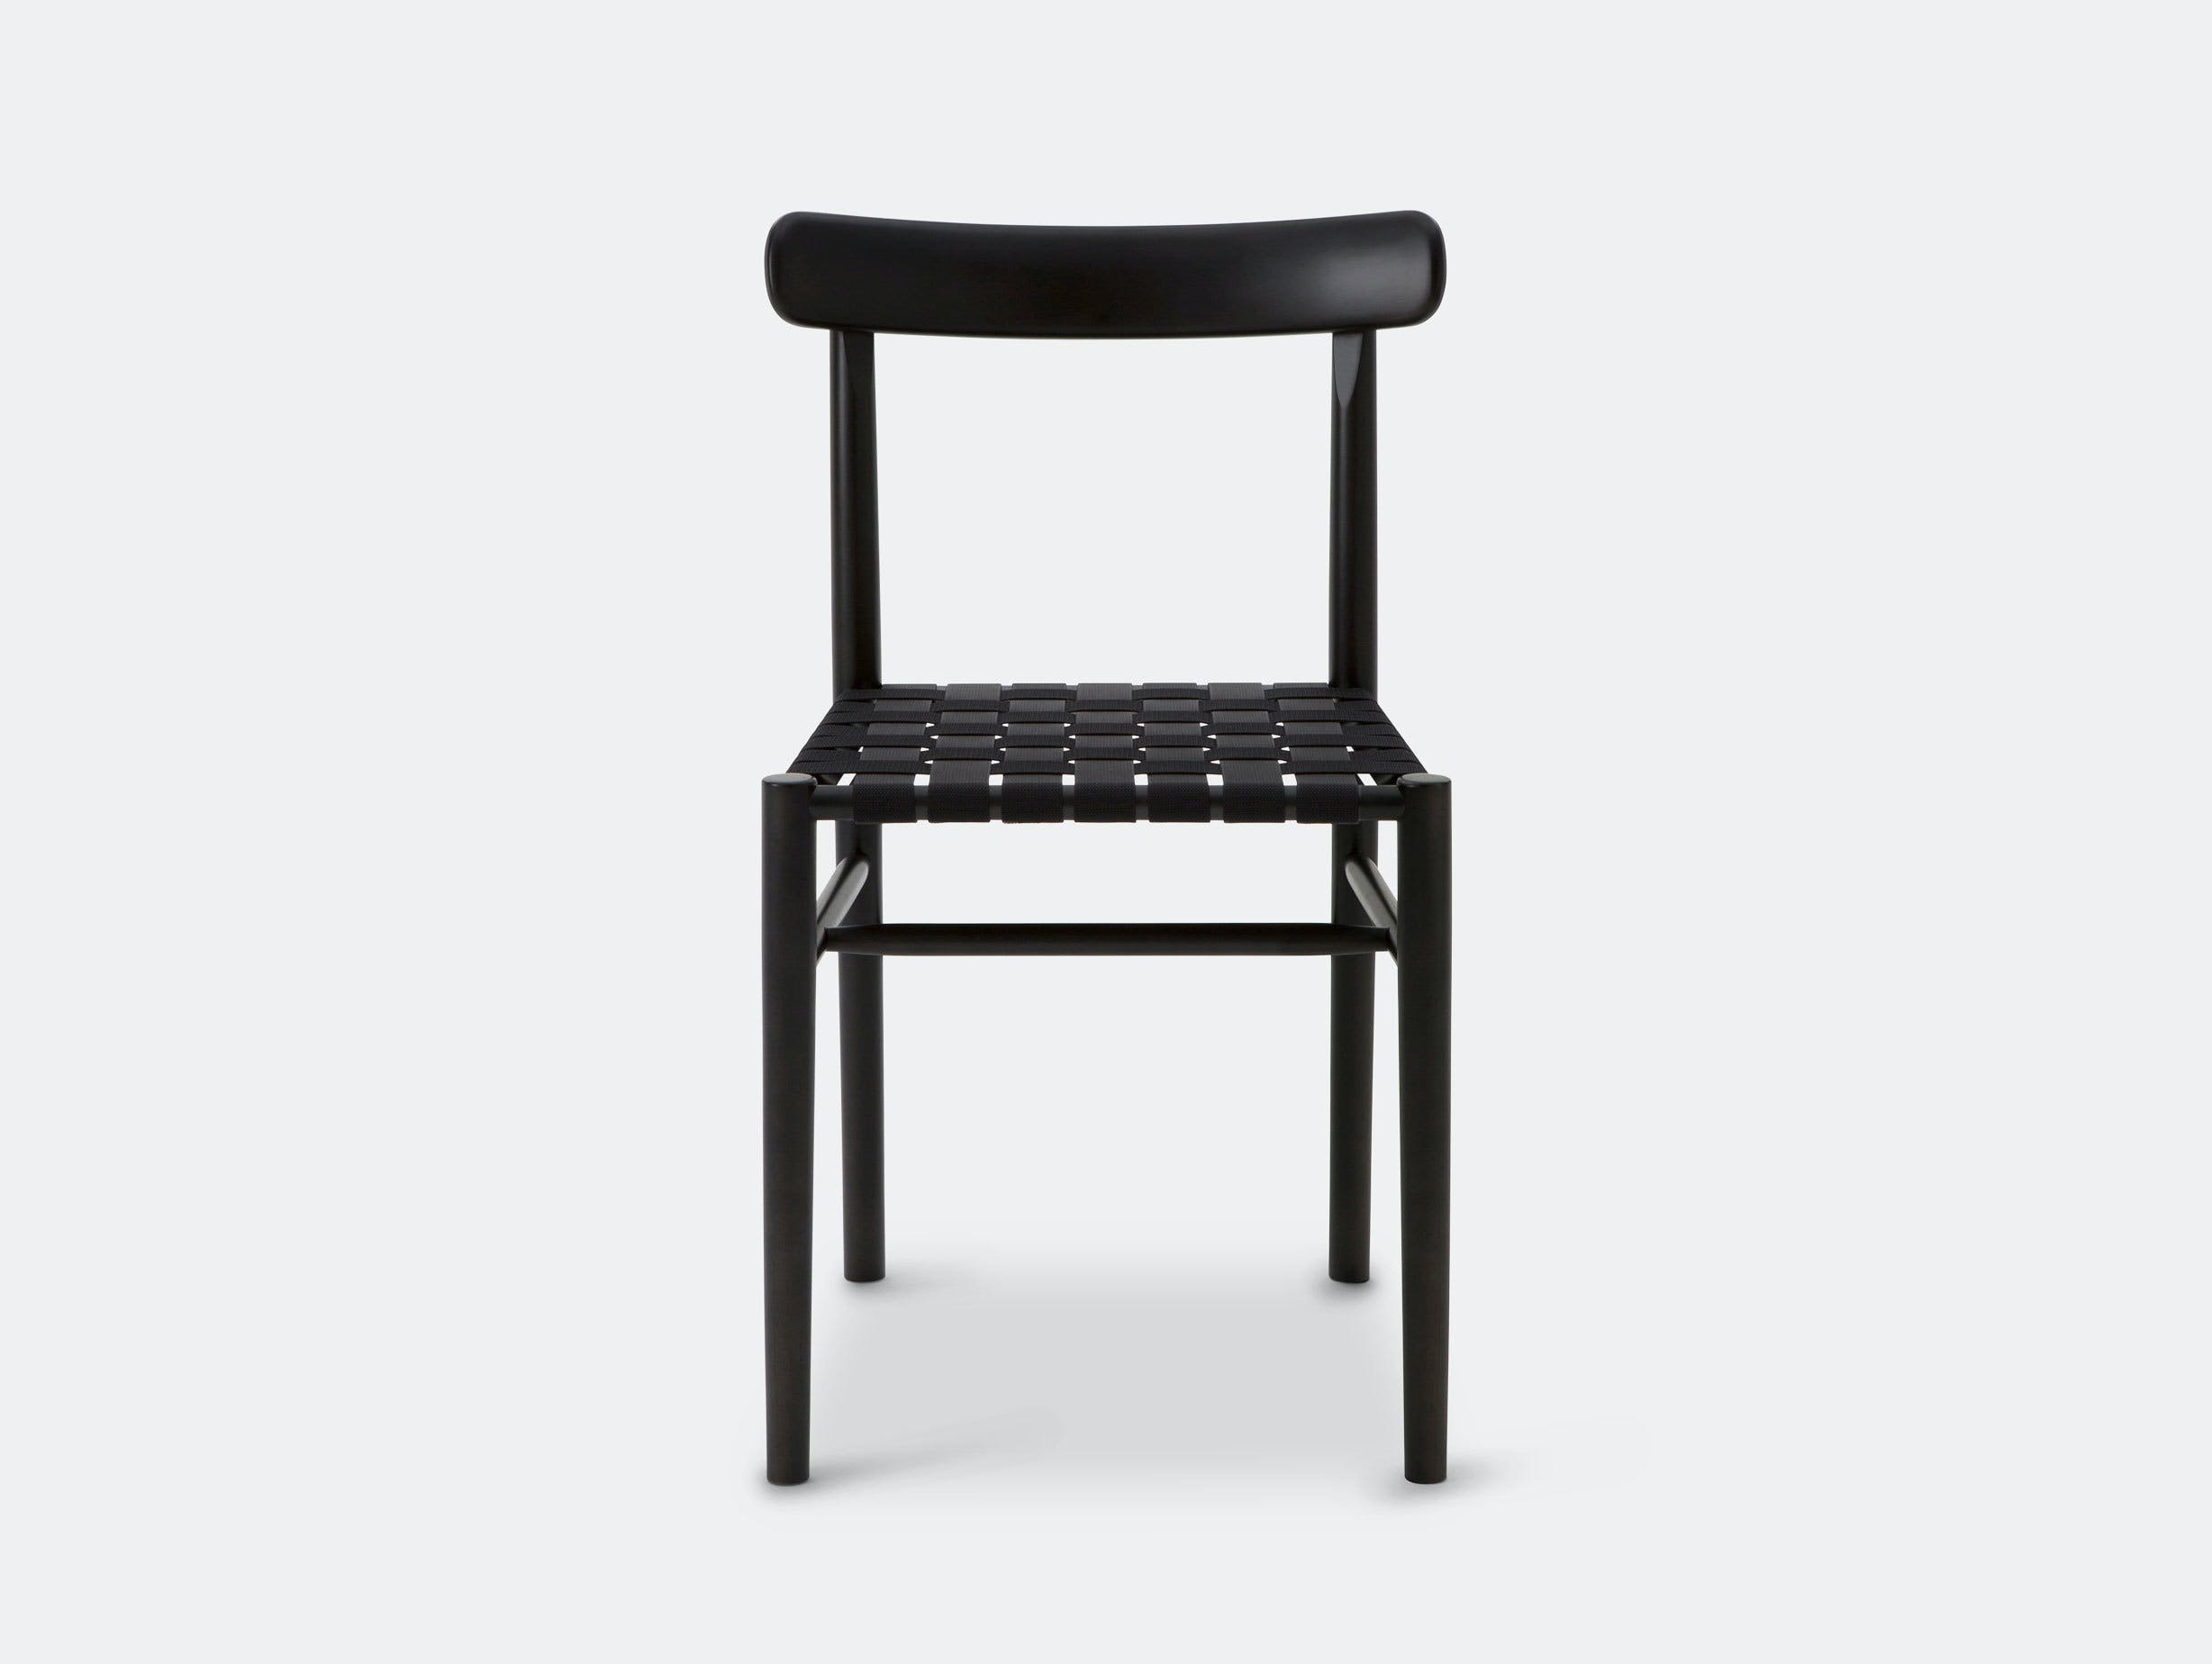 Maruni Lightwood Chair Black Maple Black Webbing Jasper Morrison